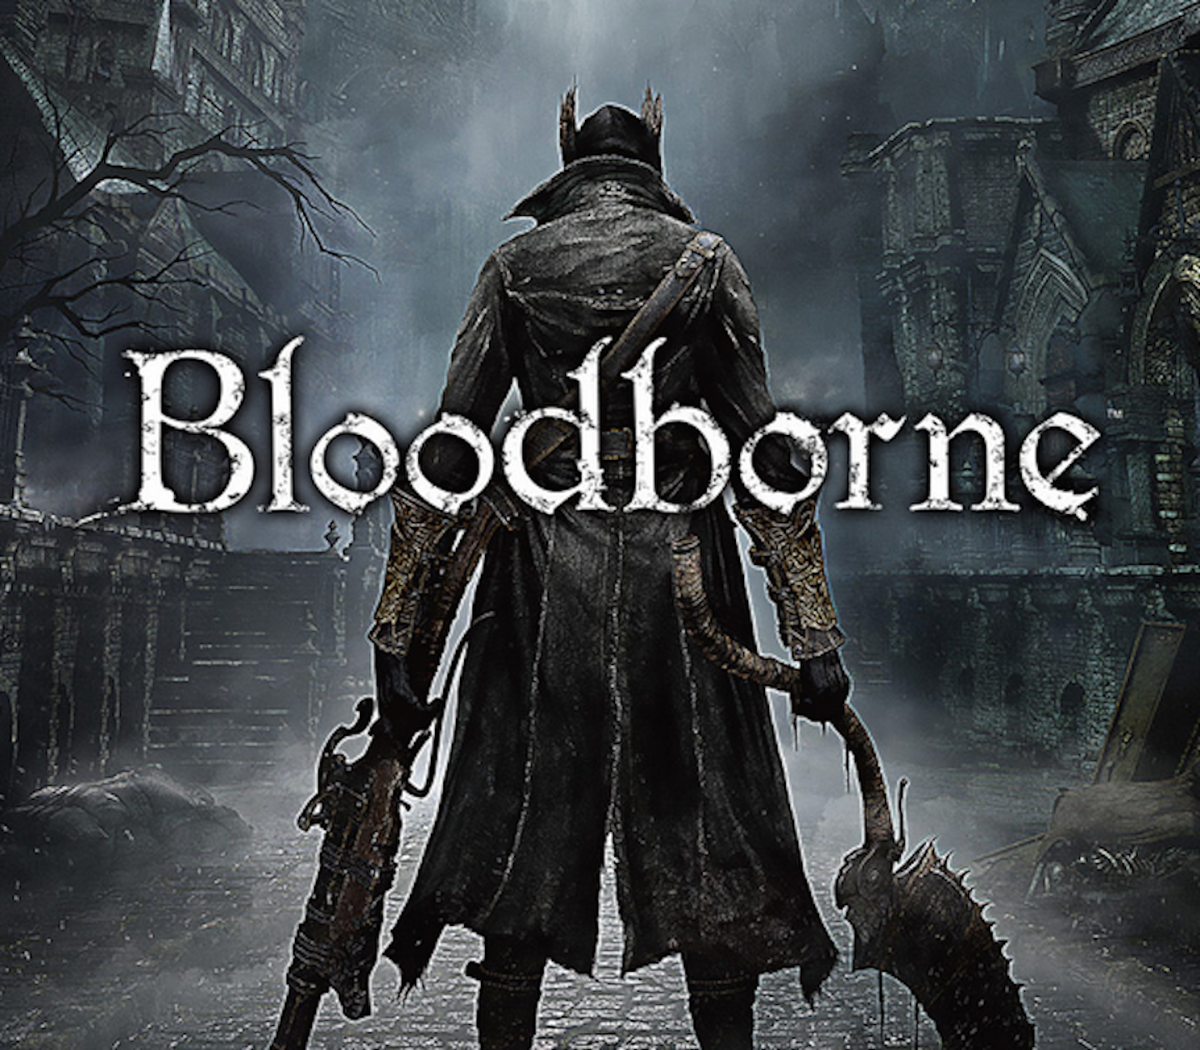 Videogame Inquiry: Bloodborne